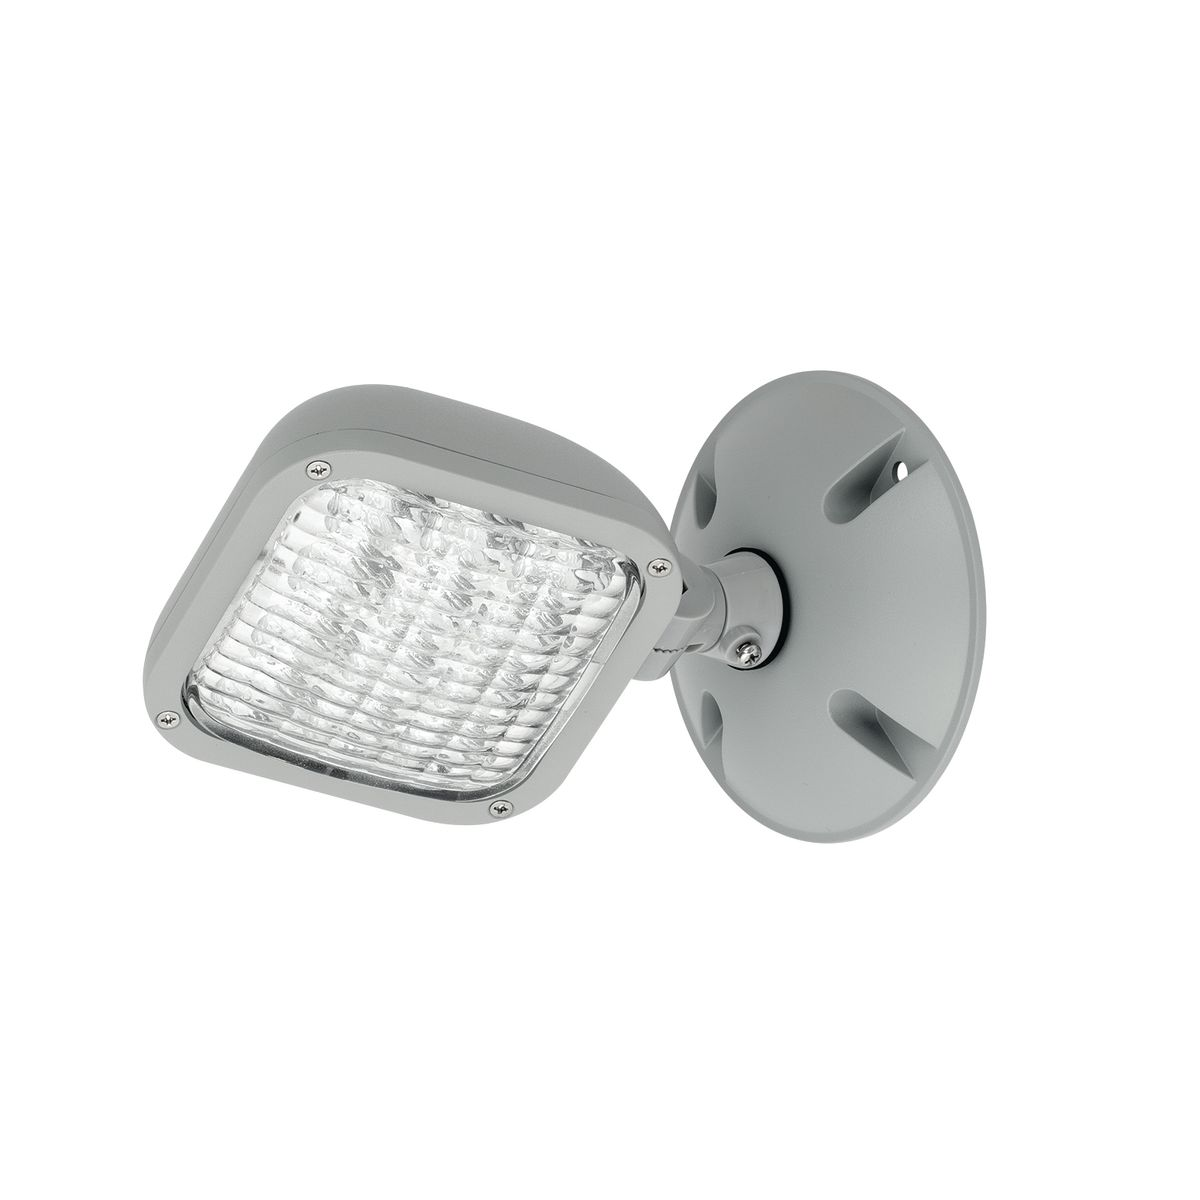 CWRS - The CWR single remote head offer quality and value with a compact and attractive LED based outdoor remote emergency light.